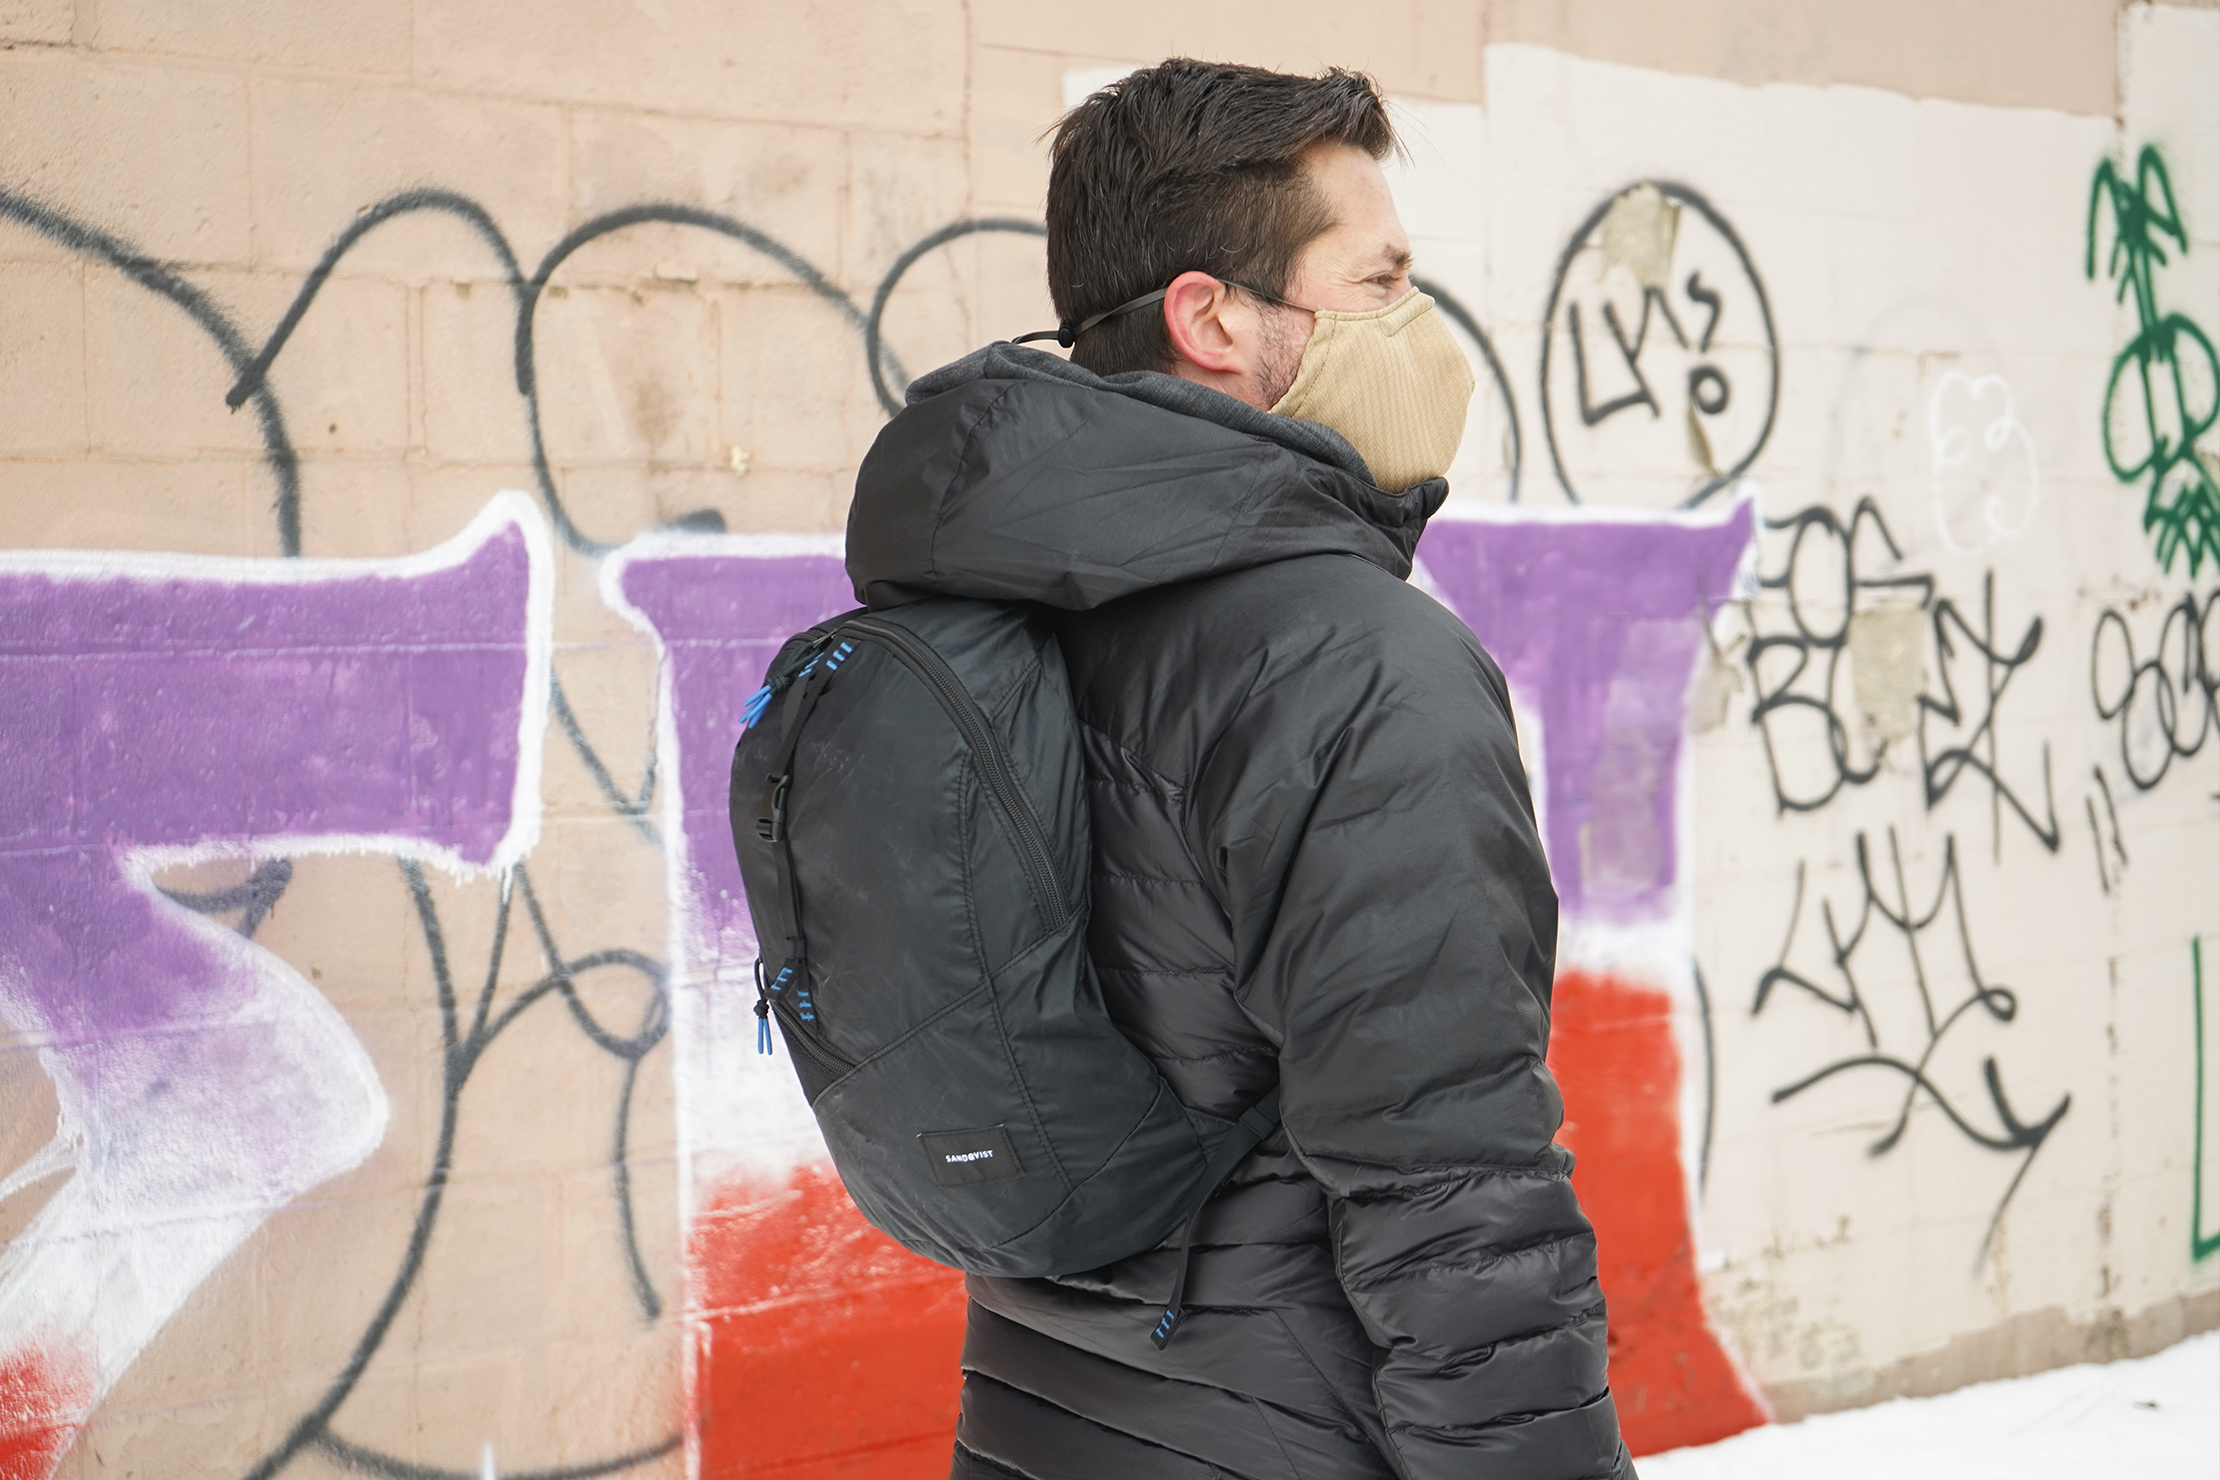 Sandqvist Erland Packable Ziptop Backpack | Carrying the backpack around an exciting new city